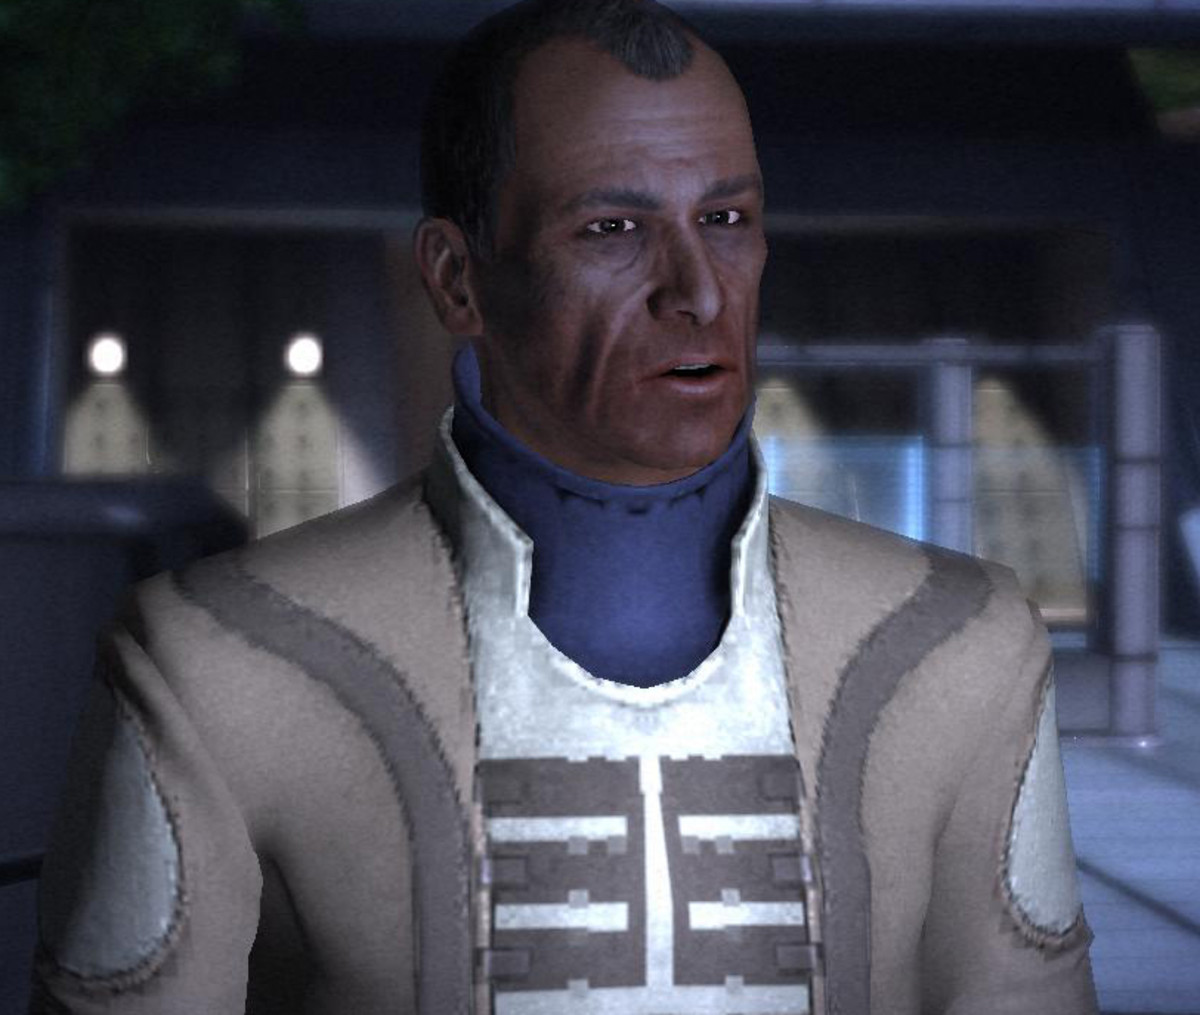 mass-effect-udina-wasnt-a-bad-guy